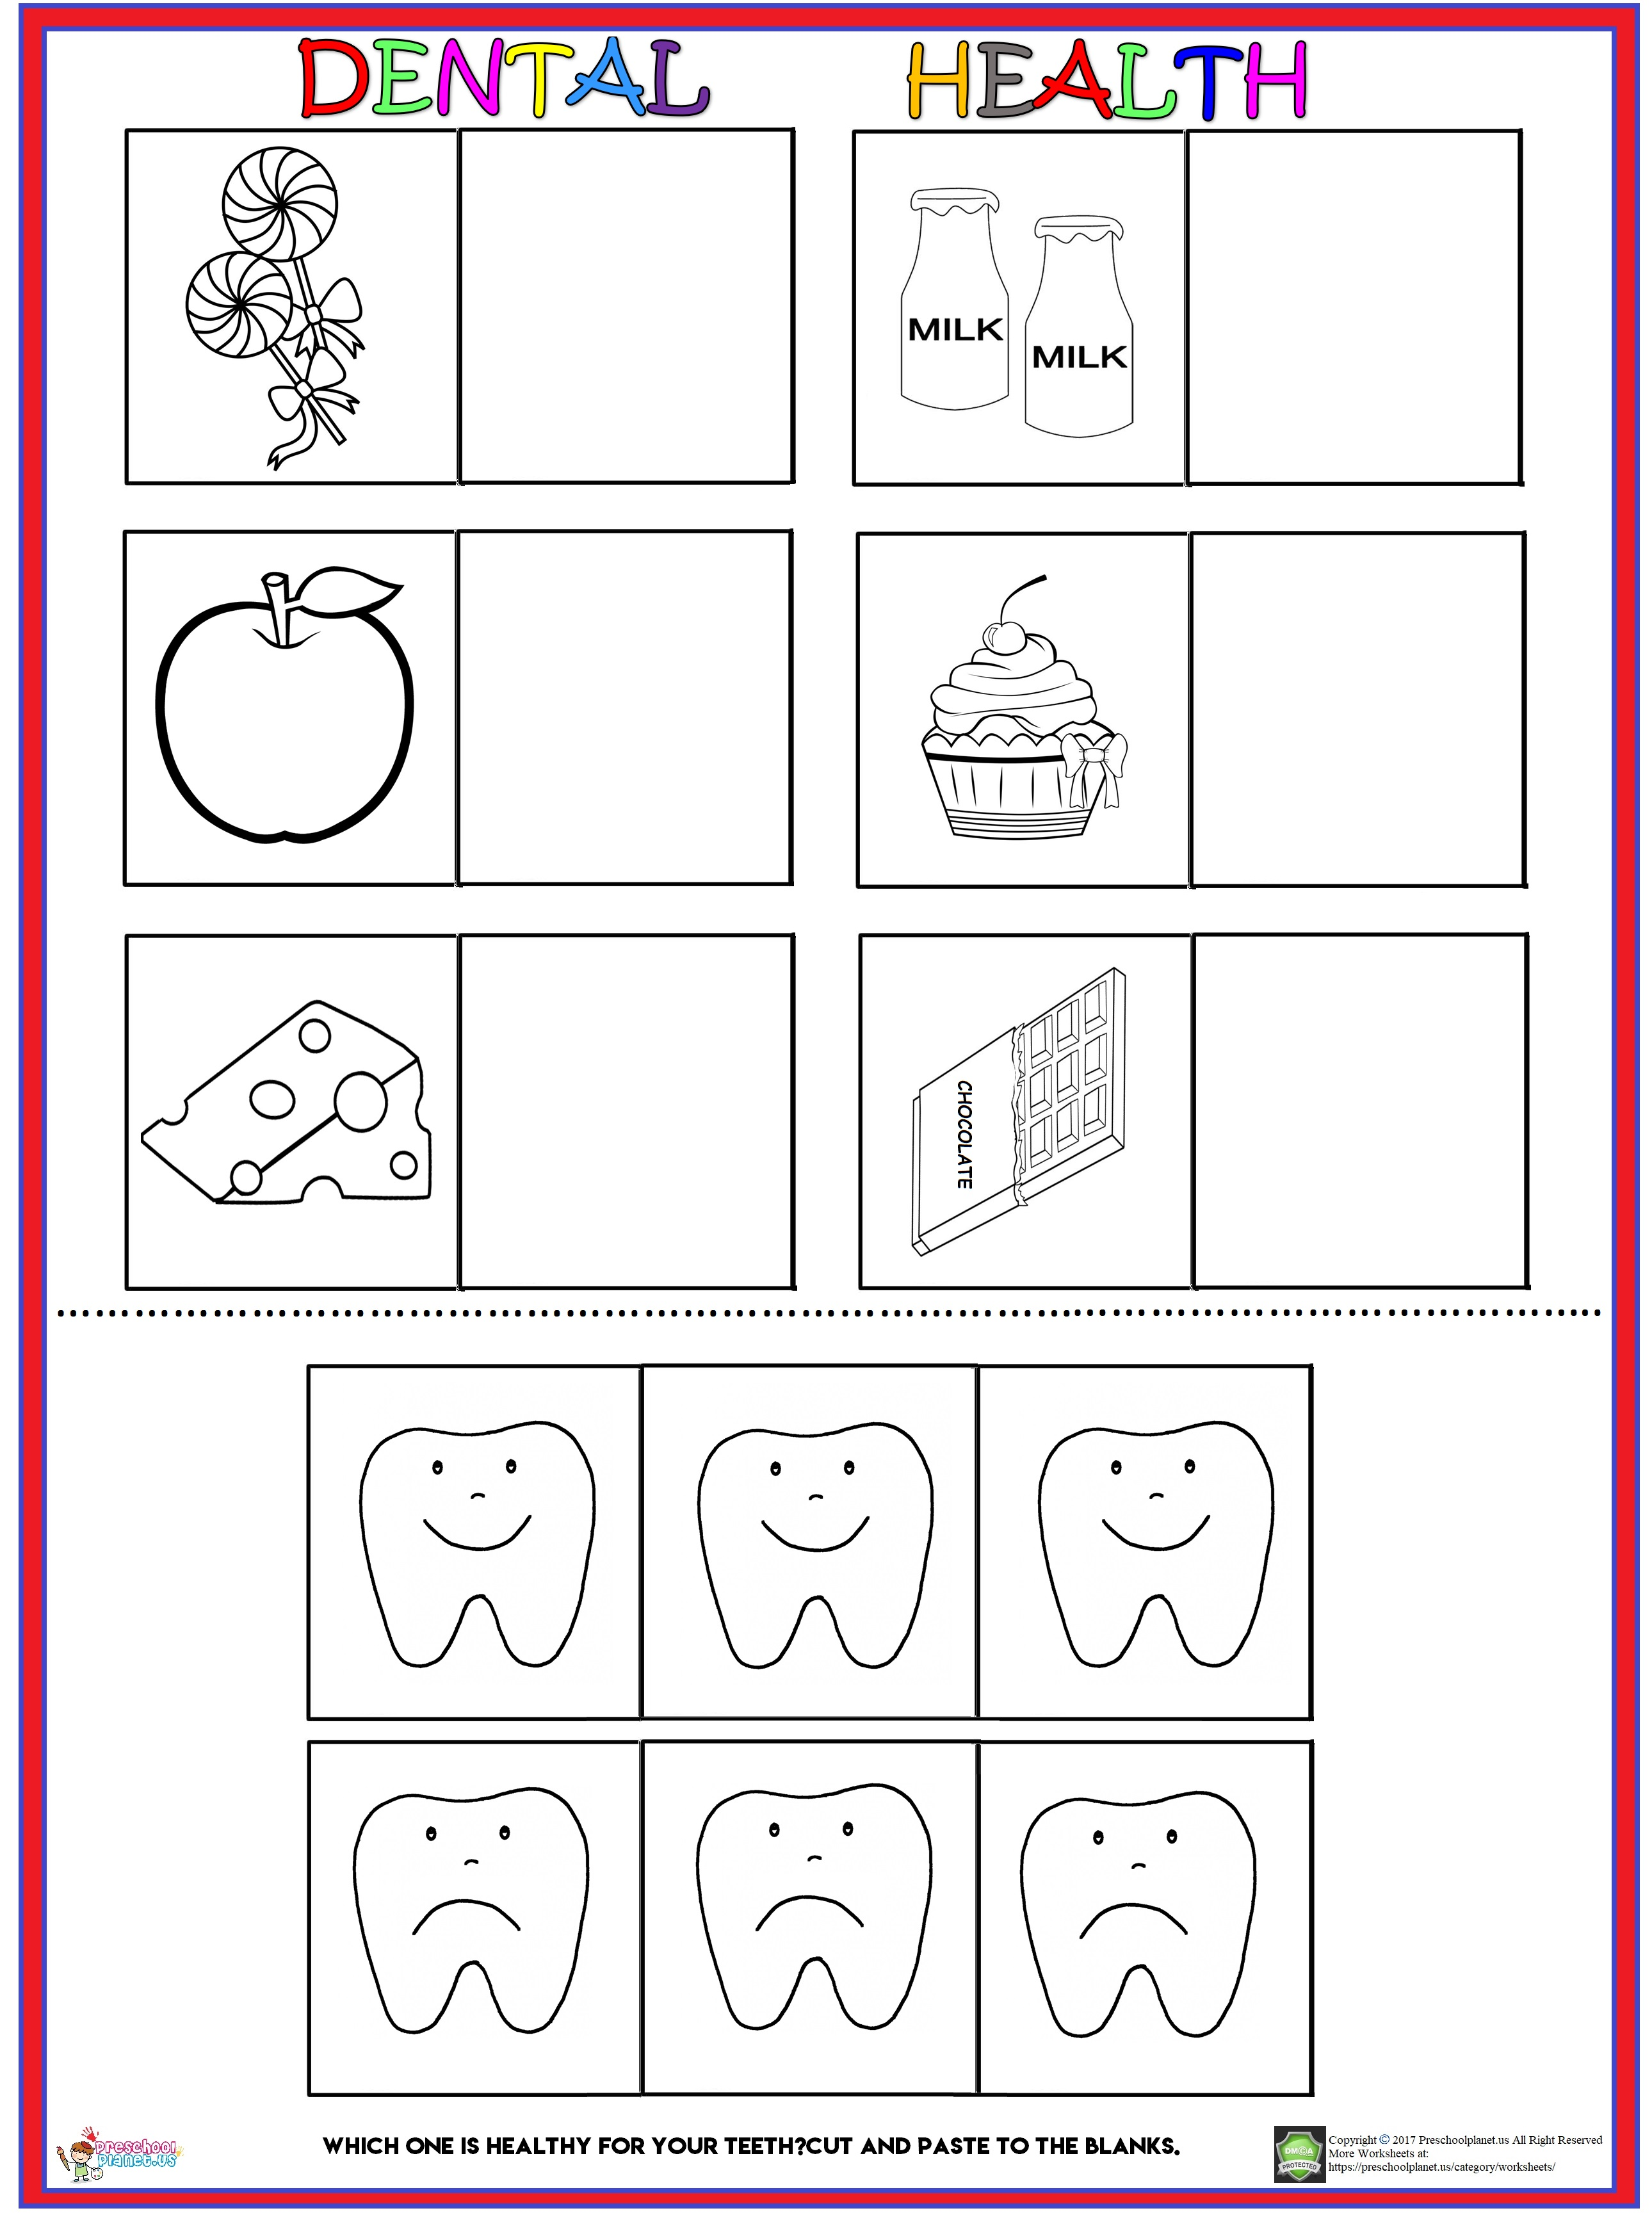 Dental Health worksheet